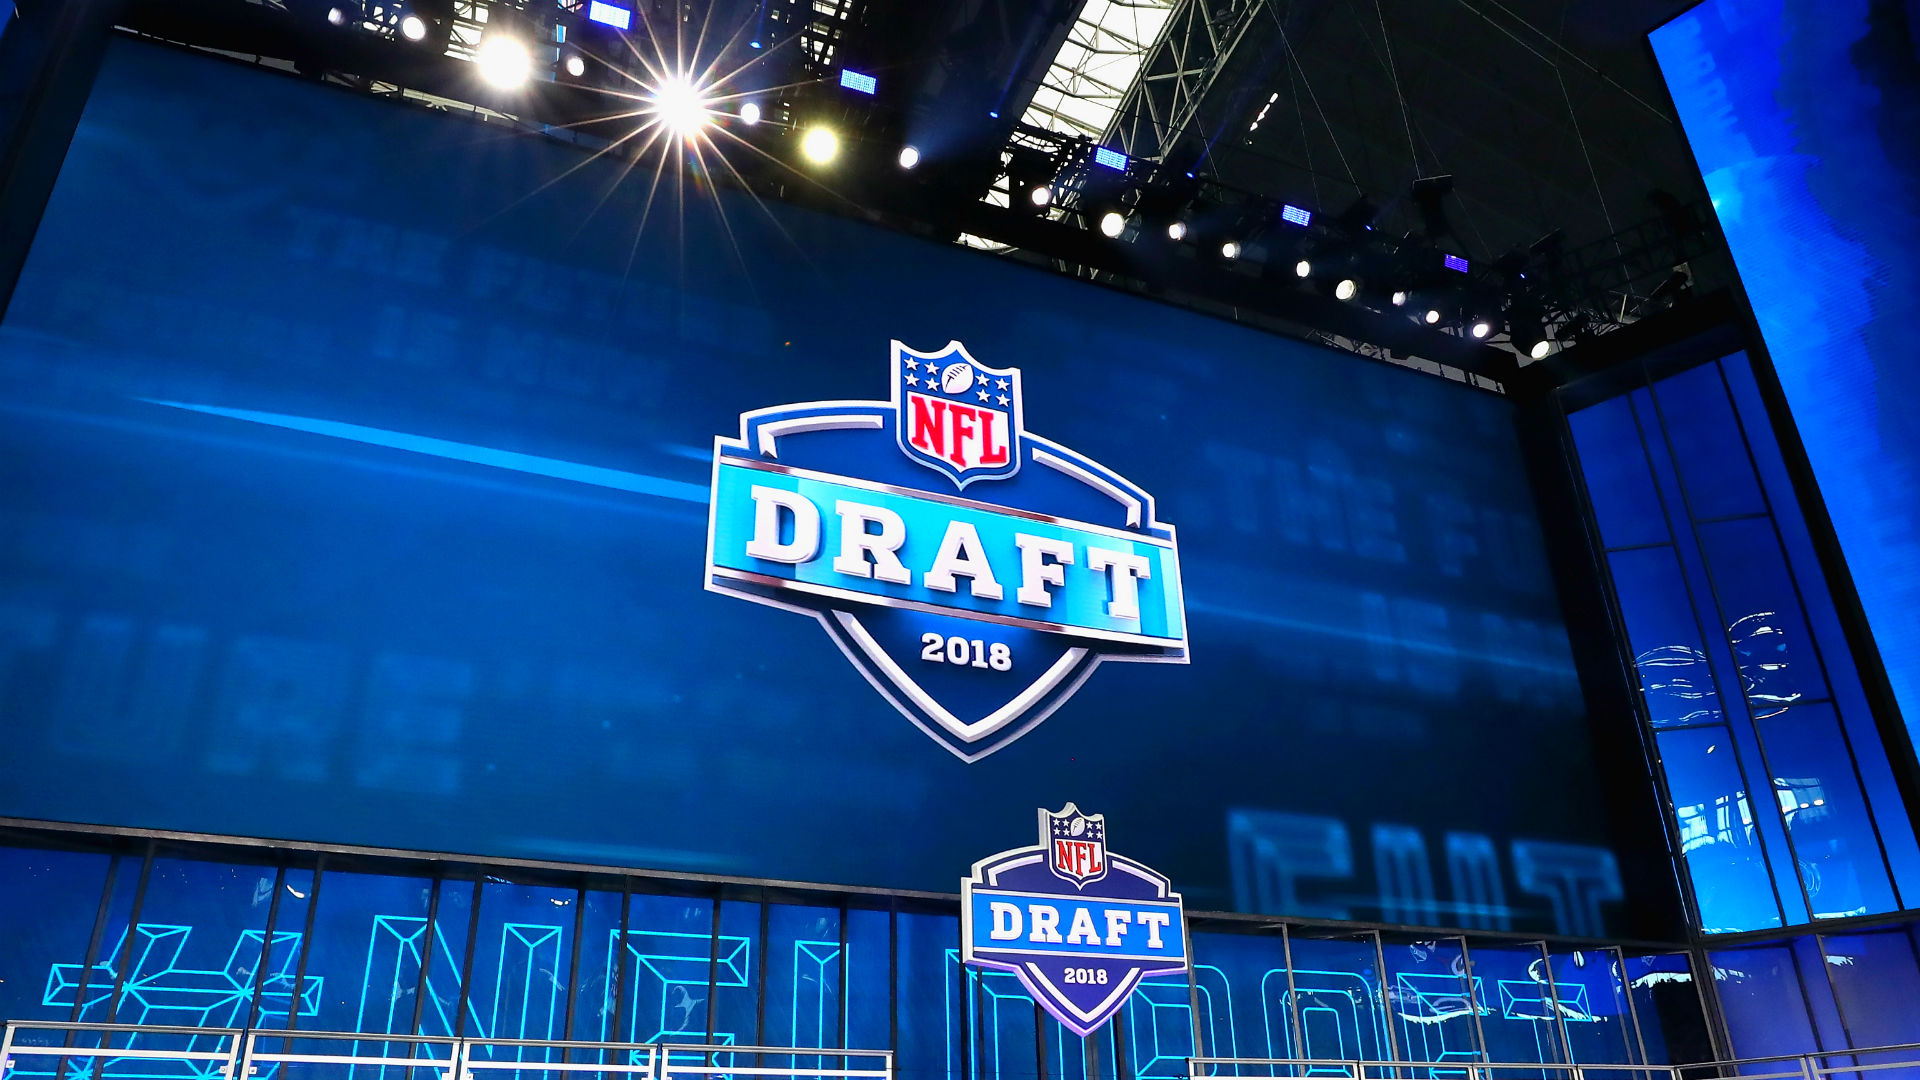 How does the NFL Draft work? Rules, rounds, eligibility and more